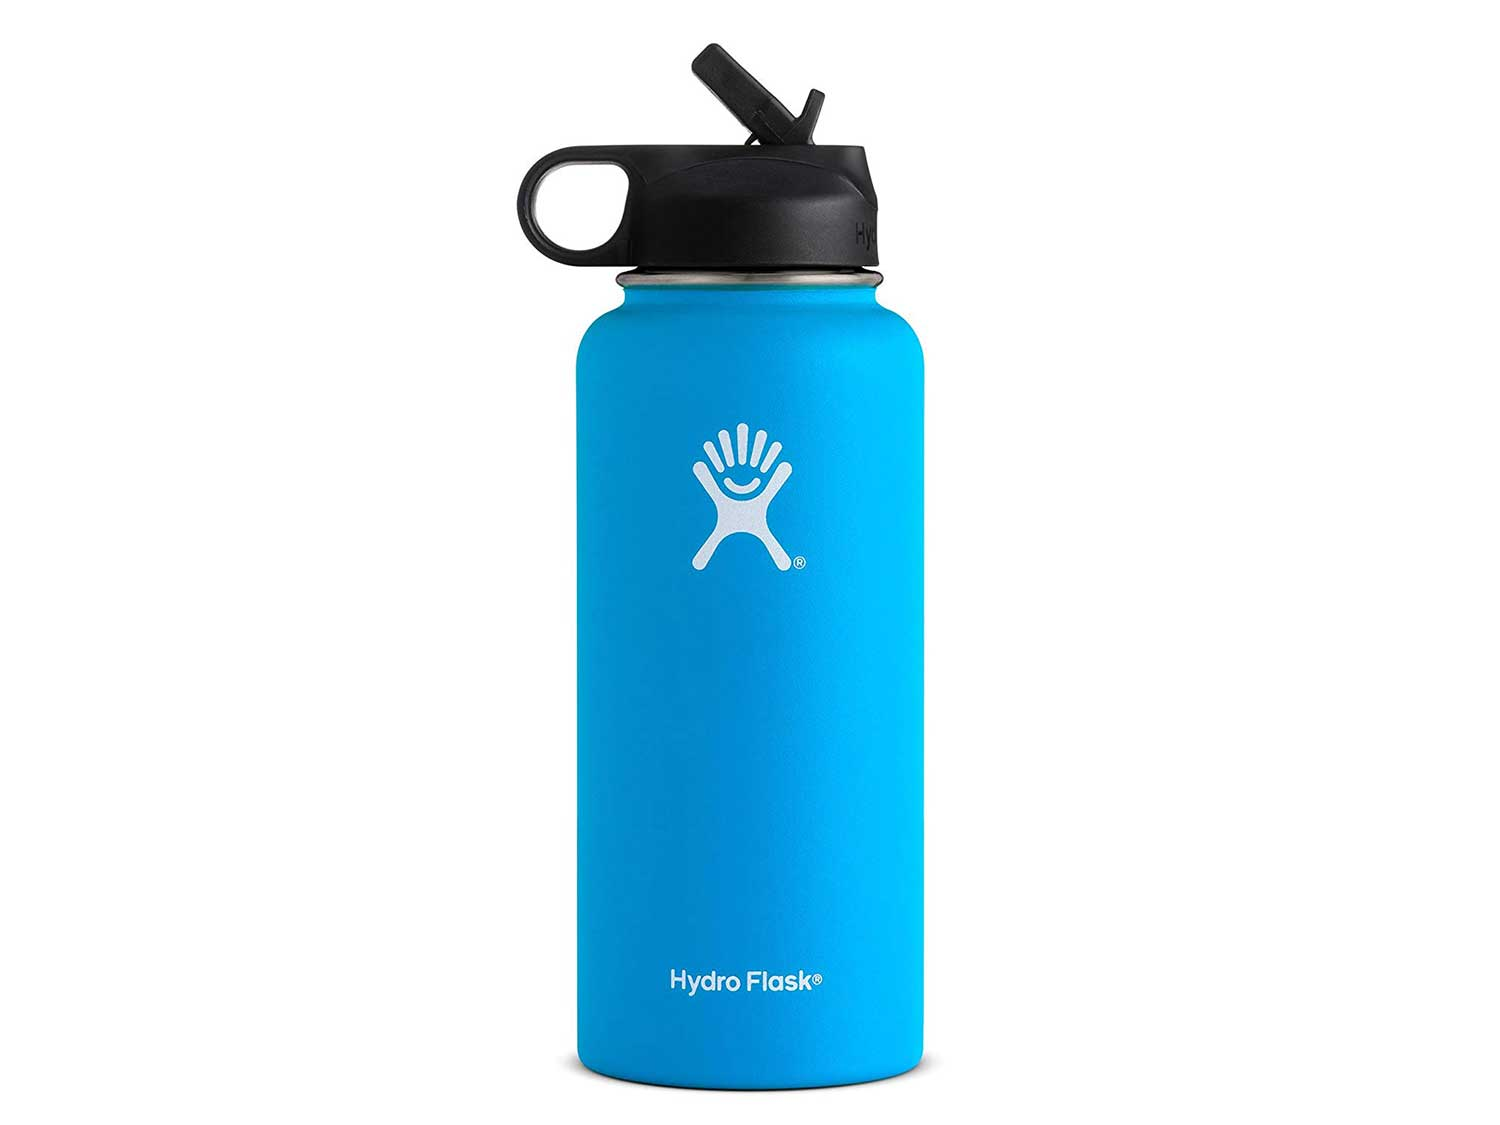 Hydro Flask with Straw Lid